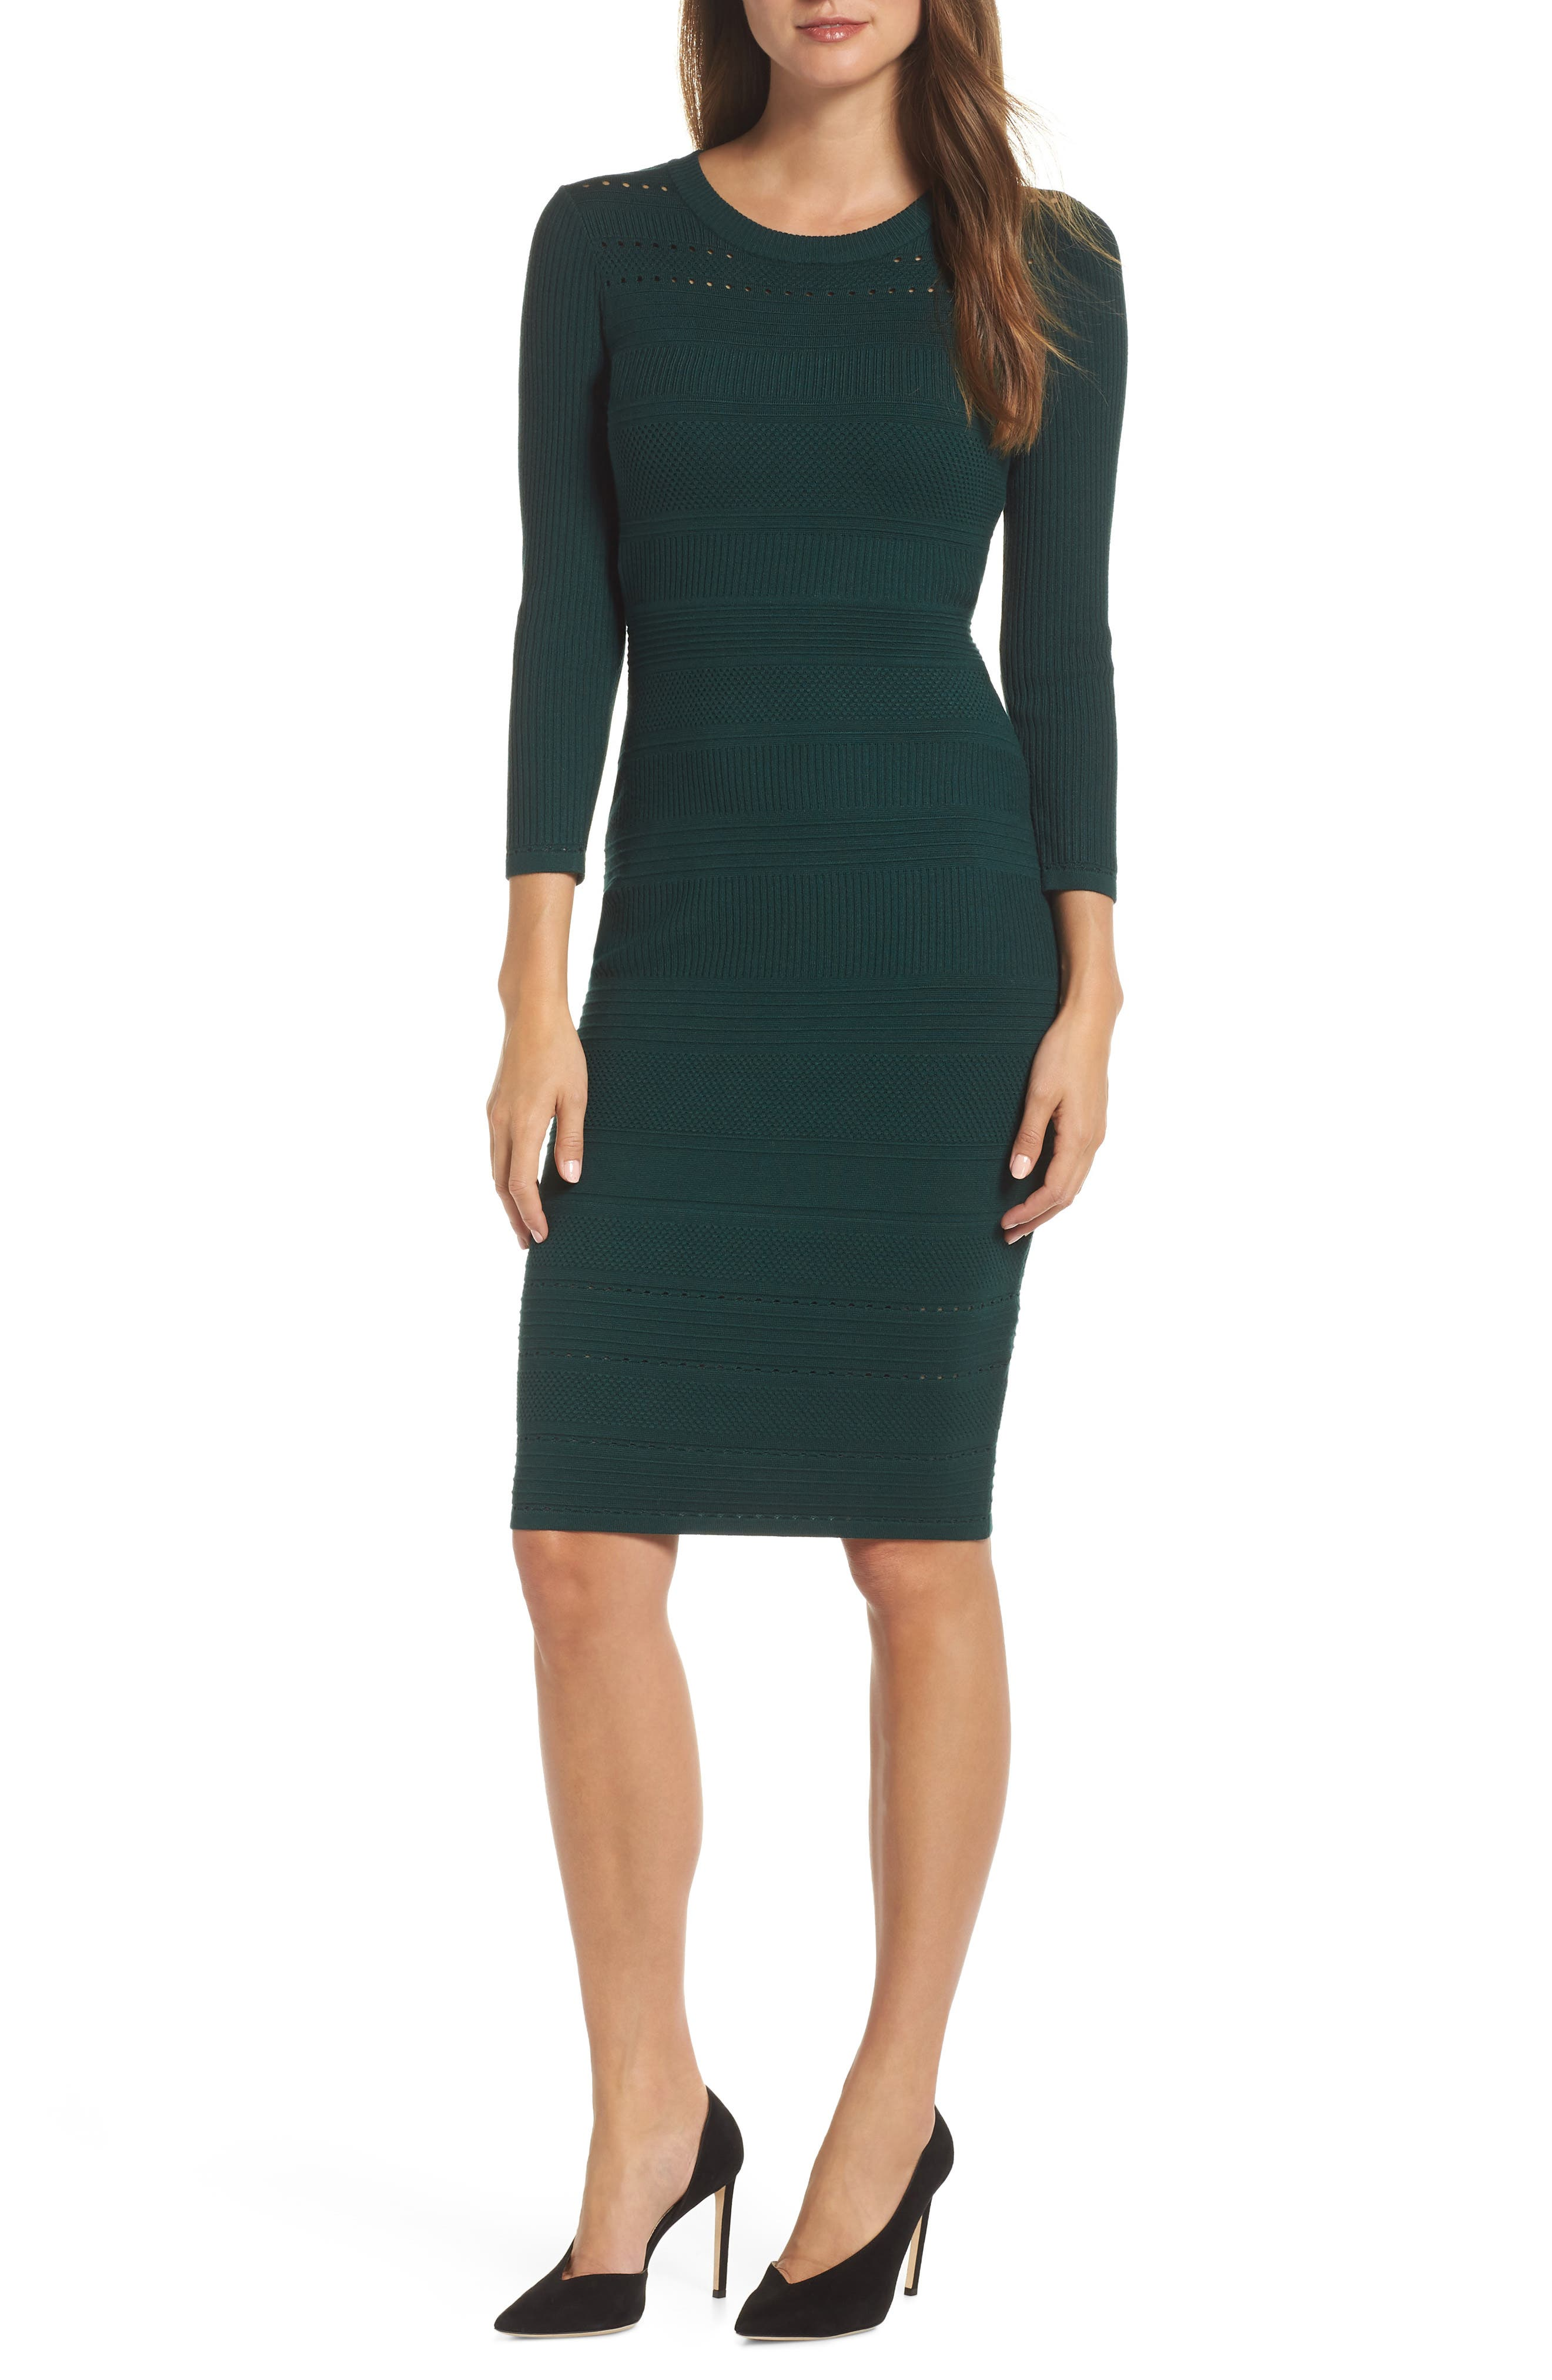 ELIZA J Stitch Detail Sweater Dress, Main, color, GREEN